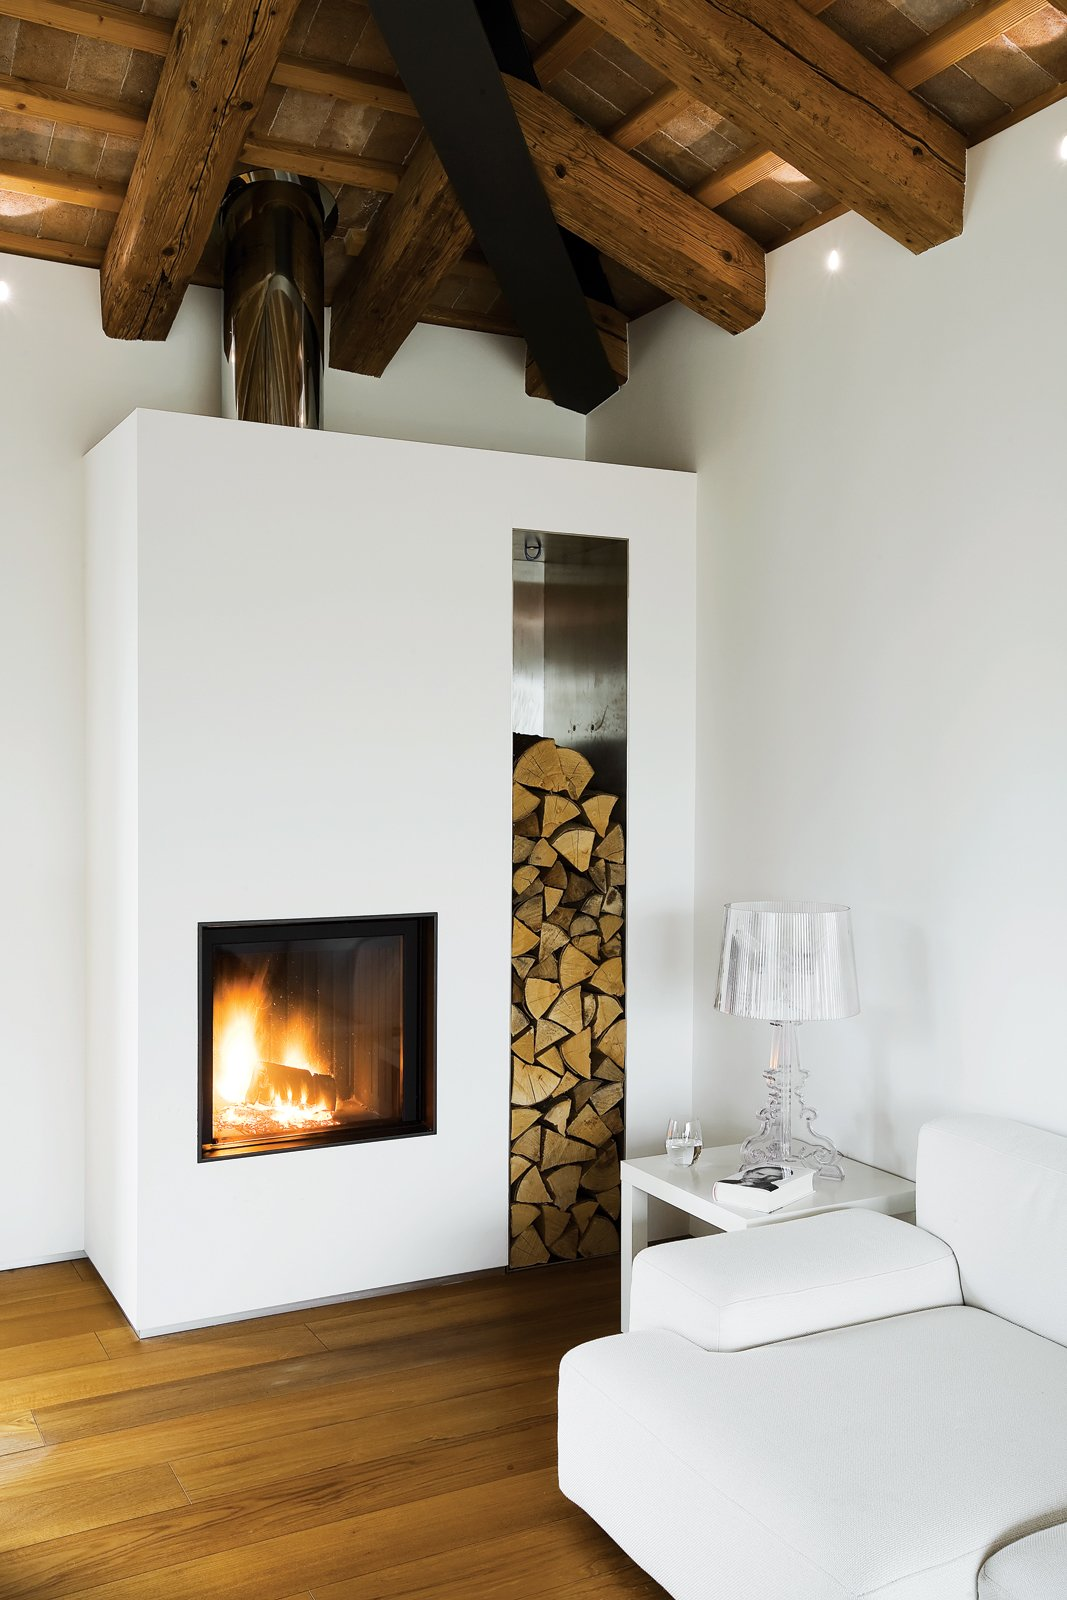 Living Room, Medium Hardwood Floor, End Tables, Sofa, Table Lighting, and Wood Burning Fireplace A firewood nice and hearth infuse the interior of a renovated farmhouse in Italy with coziness. Photo by Helenio Barbetta.  97+ Modern Fireplace Ideas from A Renovated Farmhouse in Northern Italy